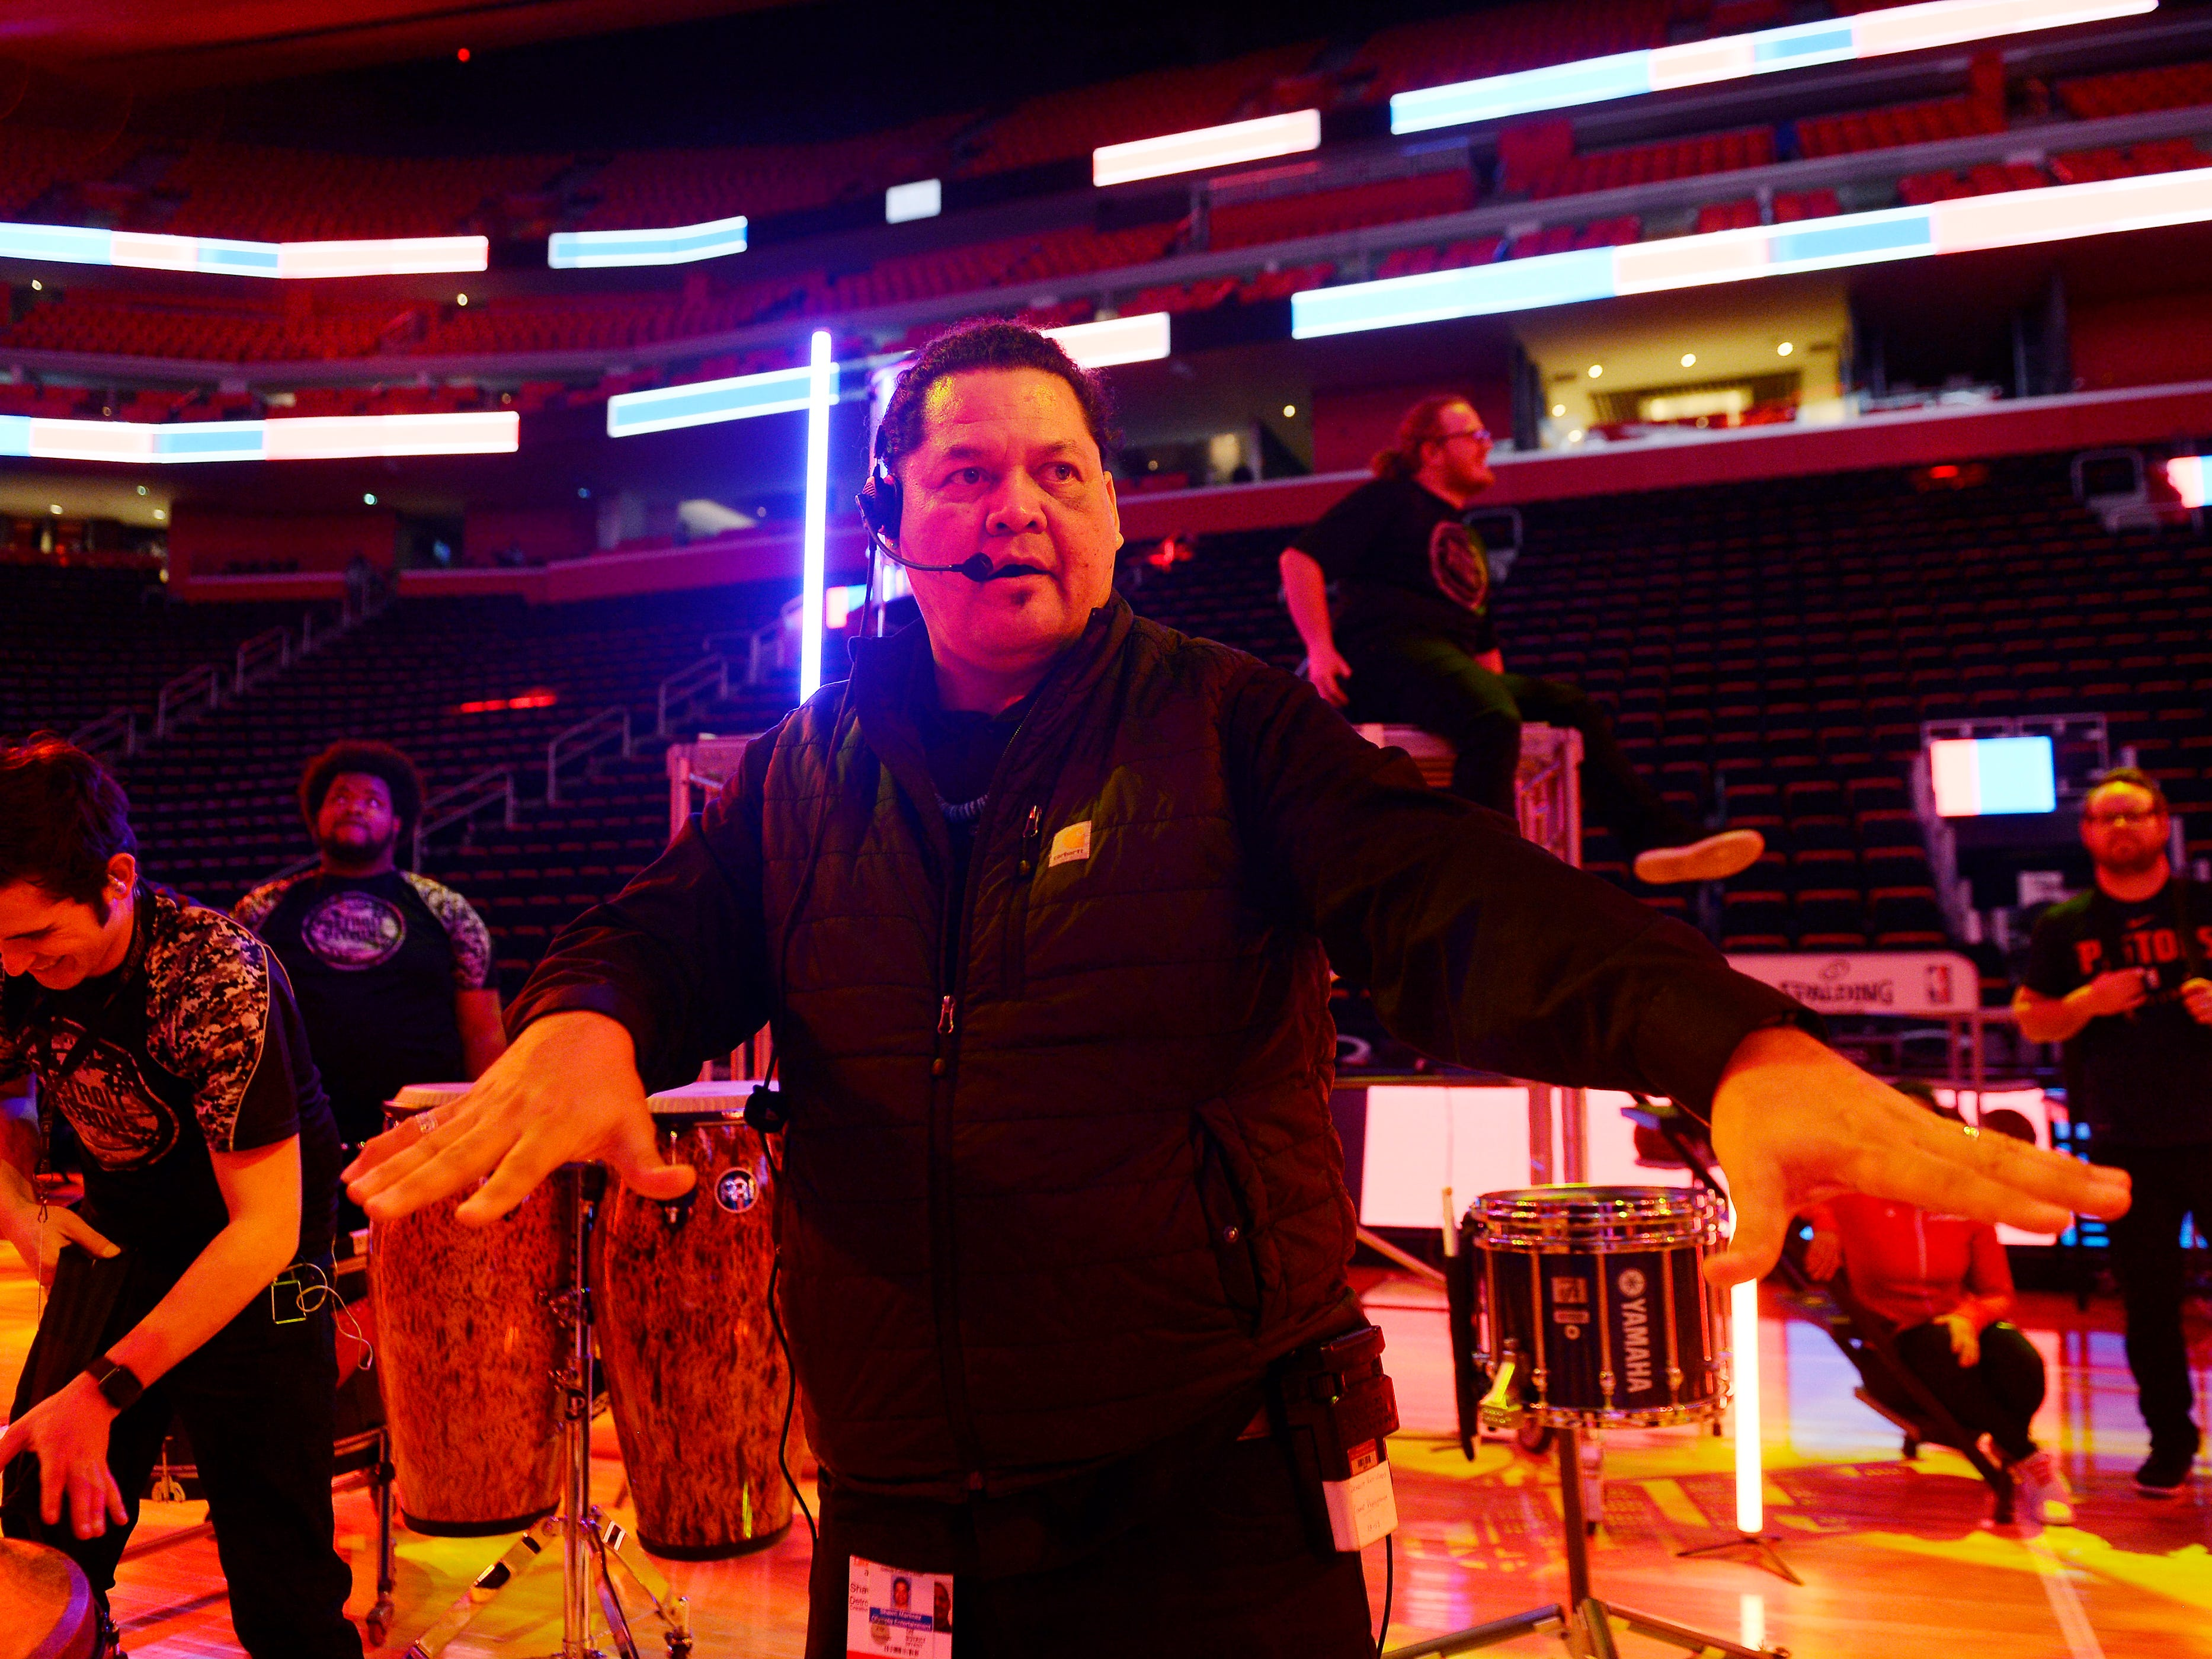 Shawn Martinez, entertainment director for the Detroit Pistons, directs the rehearsal for the halftime entertainment.